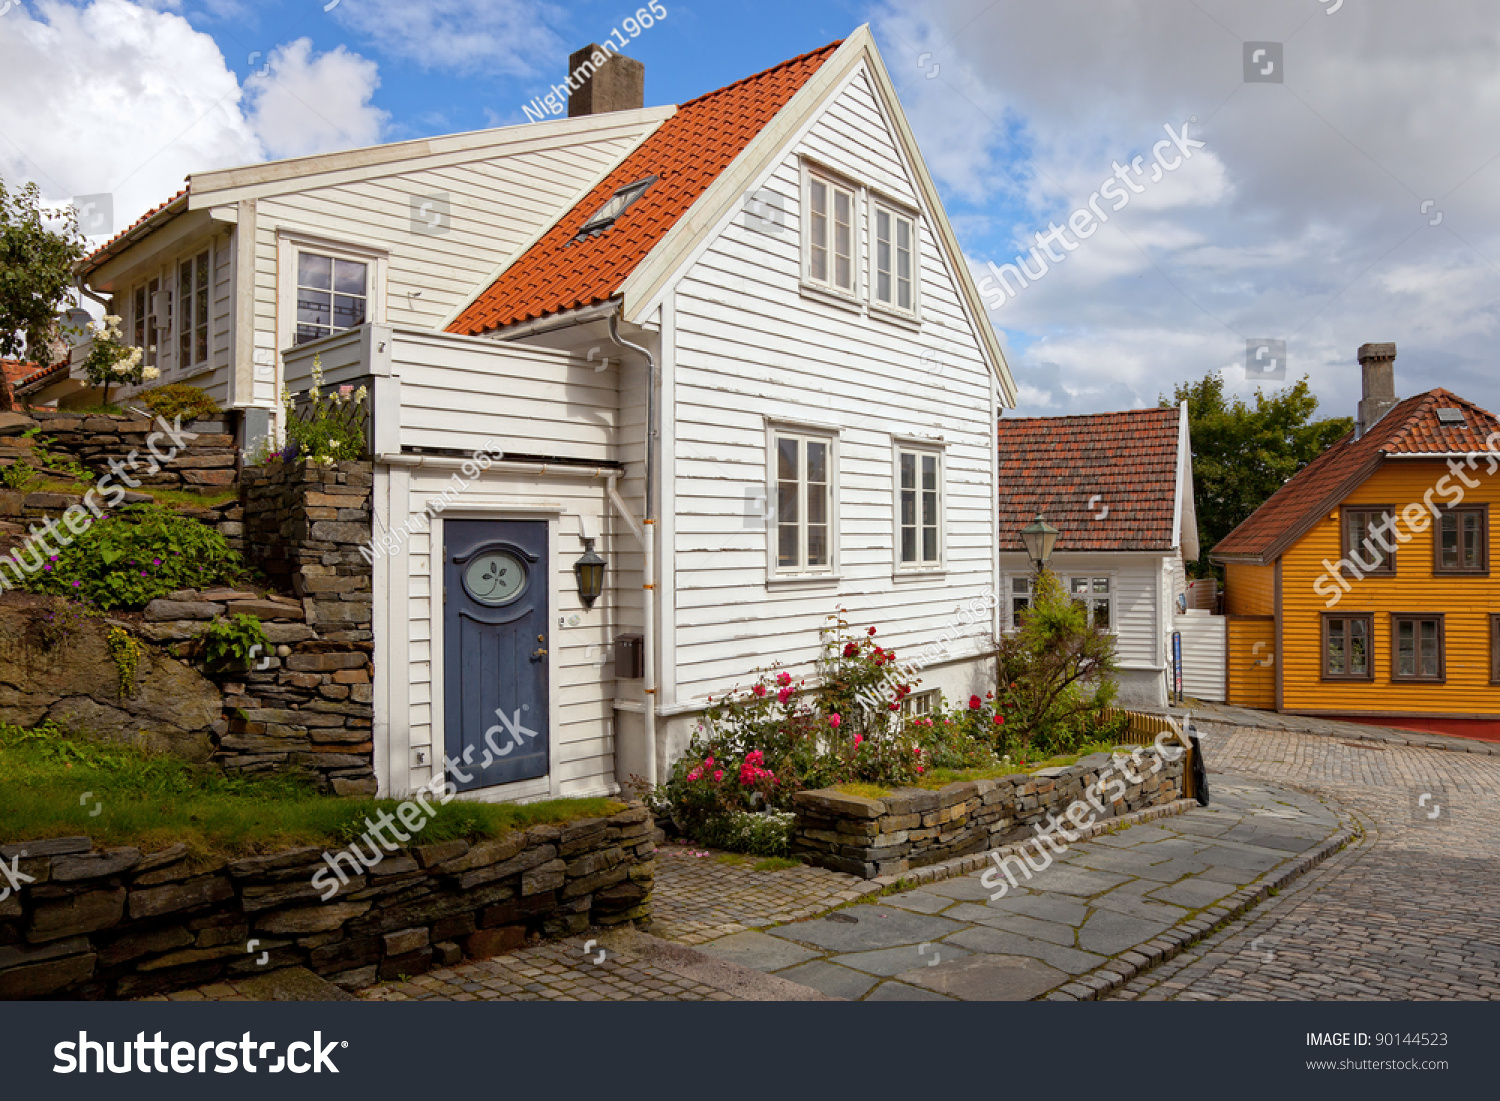 Traditional wooden houses in stavanger norway stock for Norway wooden houses